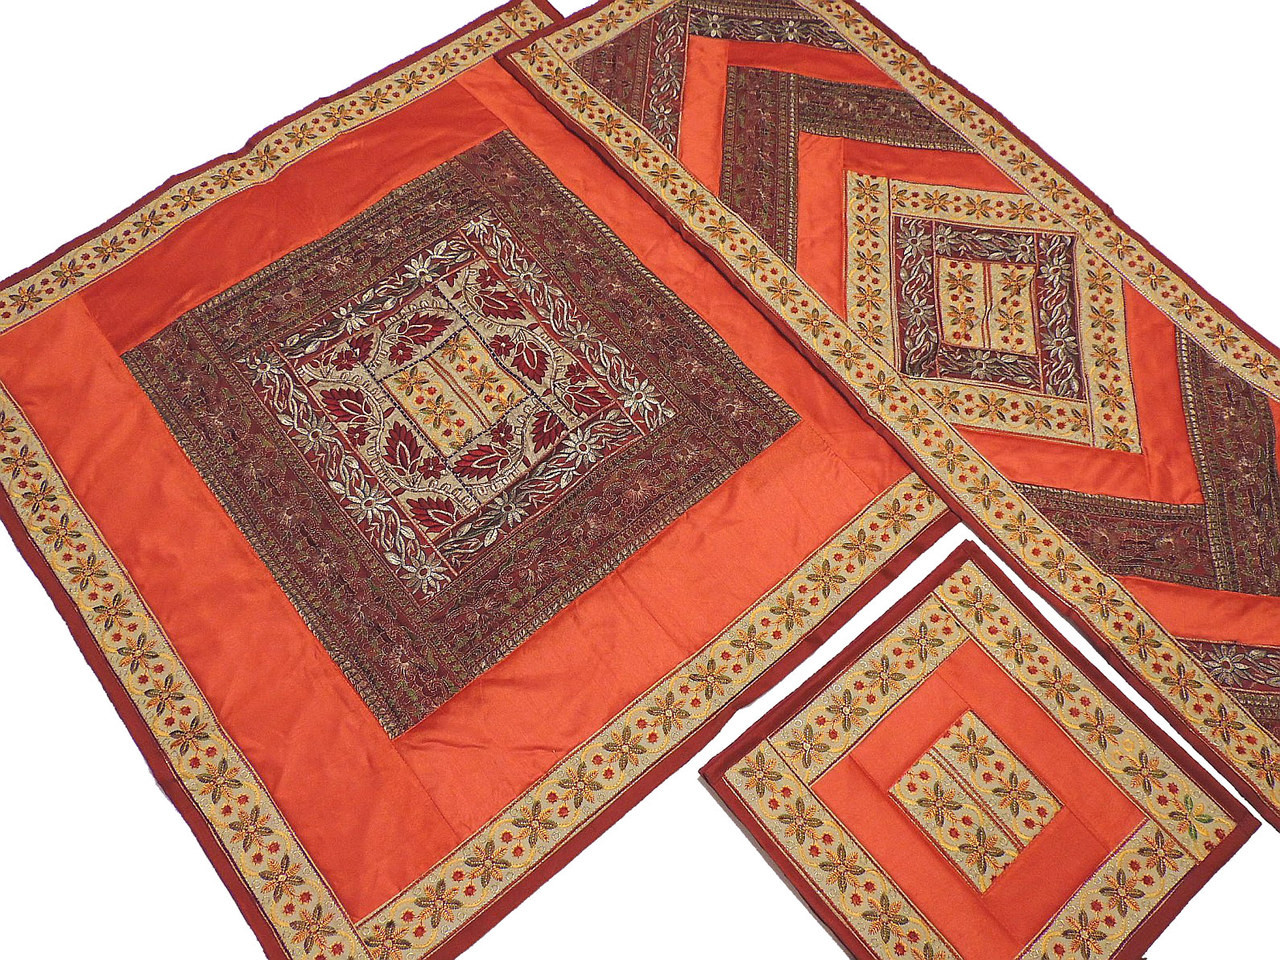 Classic Table Linens Set From India   Orange Tablecloth Runner 4 Placemats.